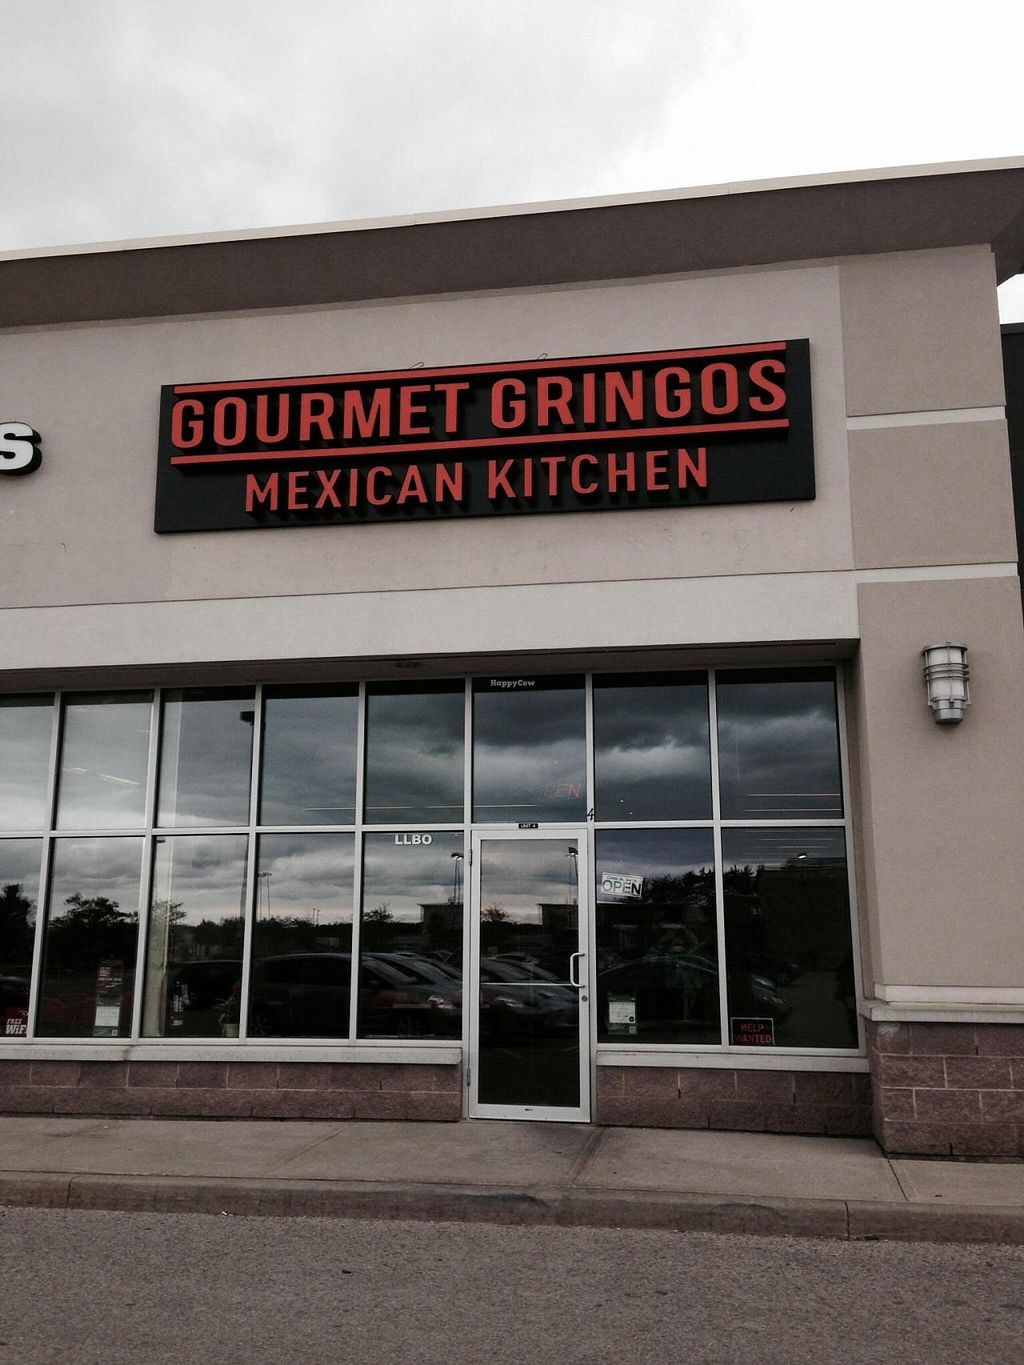 """Photo of CLOSED: Gourmet Gringos  by <a href=""""/members/profile/Gracem"""">Gracem</a> <br/>Frontage <br/> November 4, 2014  - <a href='/contact/abuse/image/52565/84711'>Report</a>"""